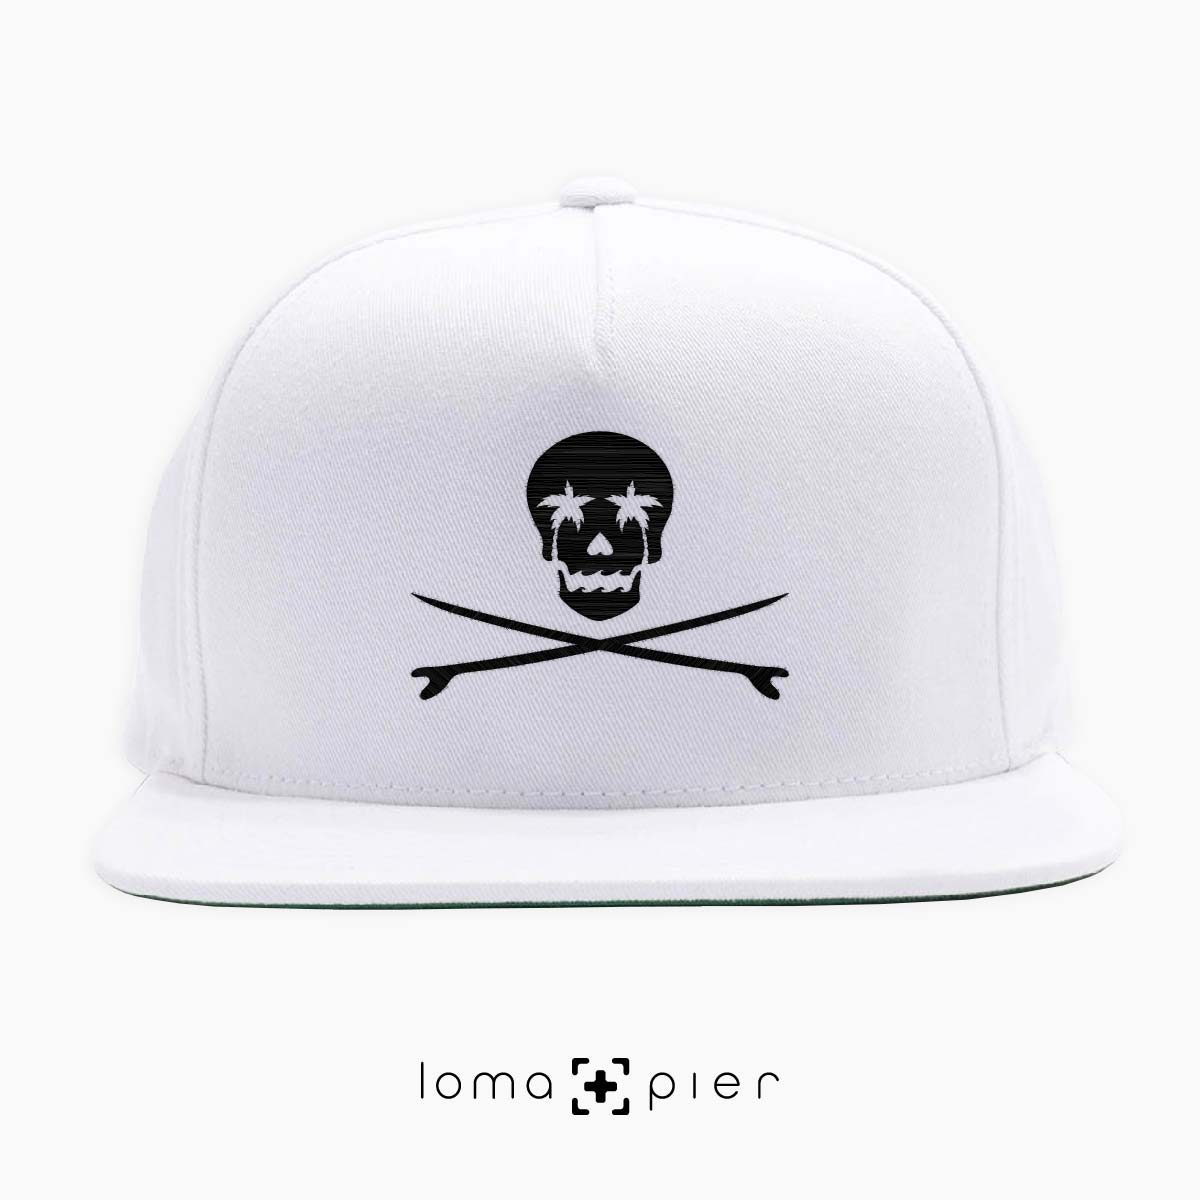 SKULL SURFBOARDS redondo beach snapback hat in white by loma+pier hat store